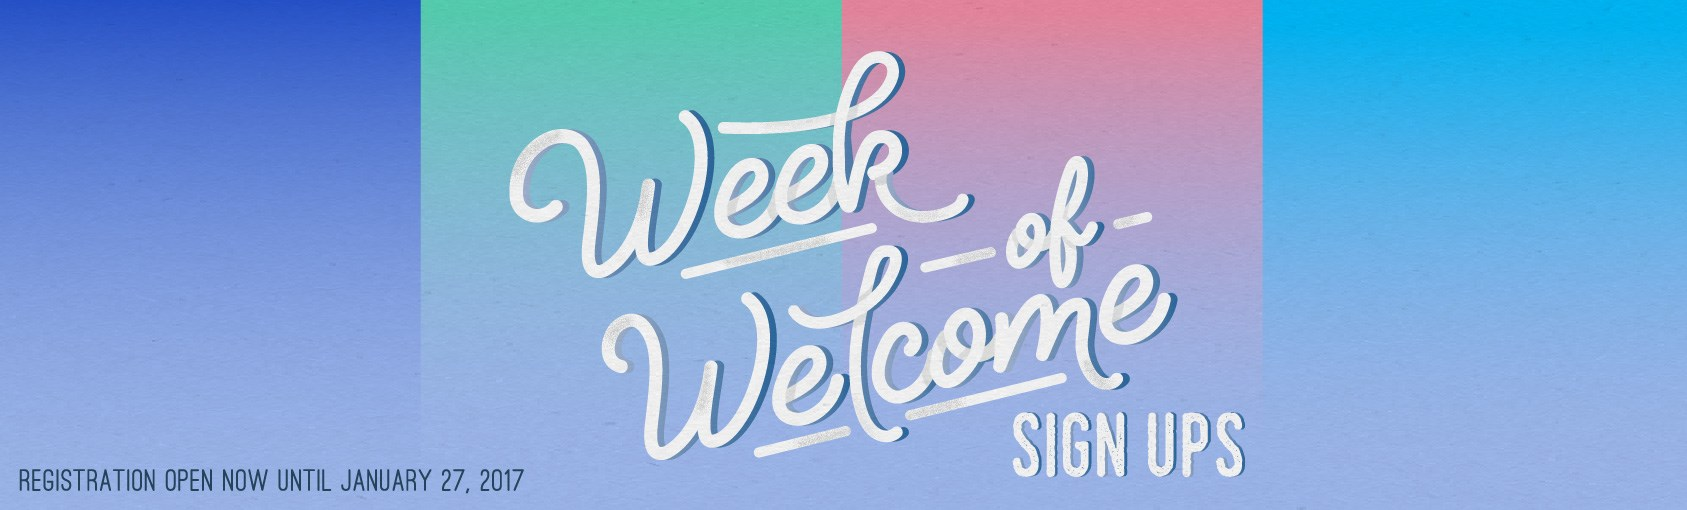 Sign Up for Week of Welcome banner